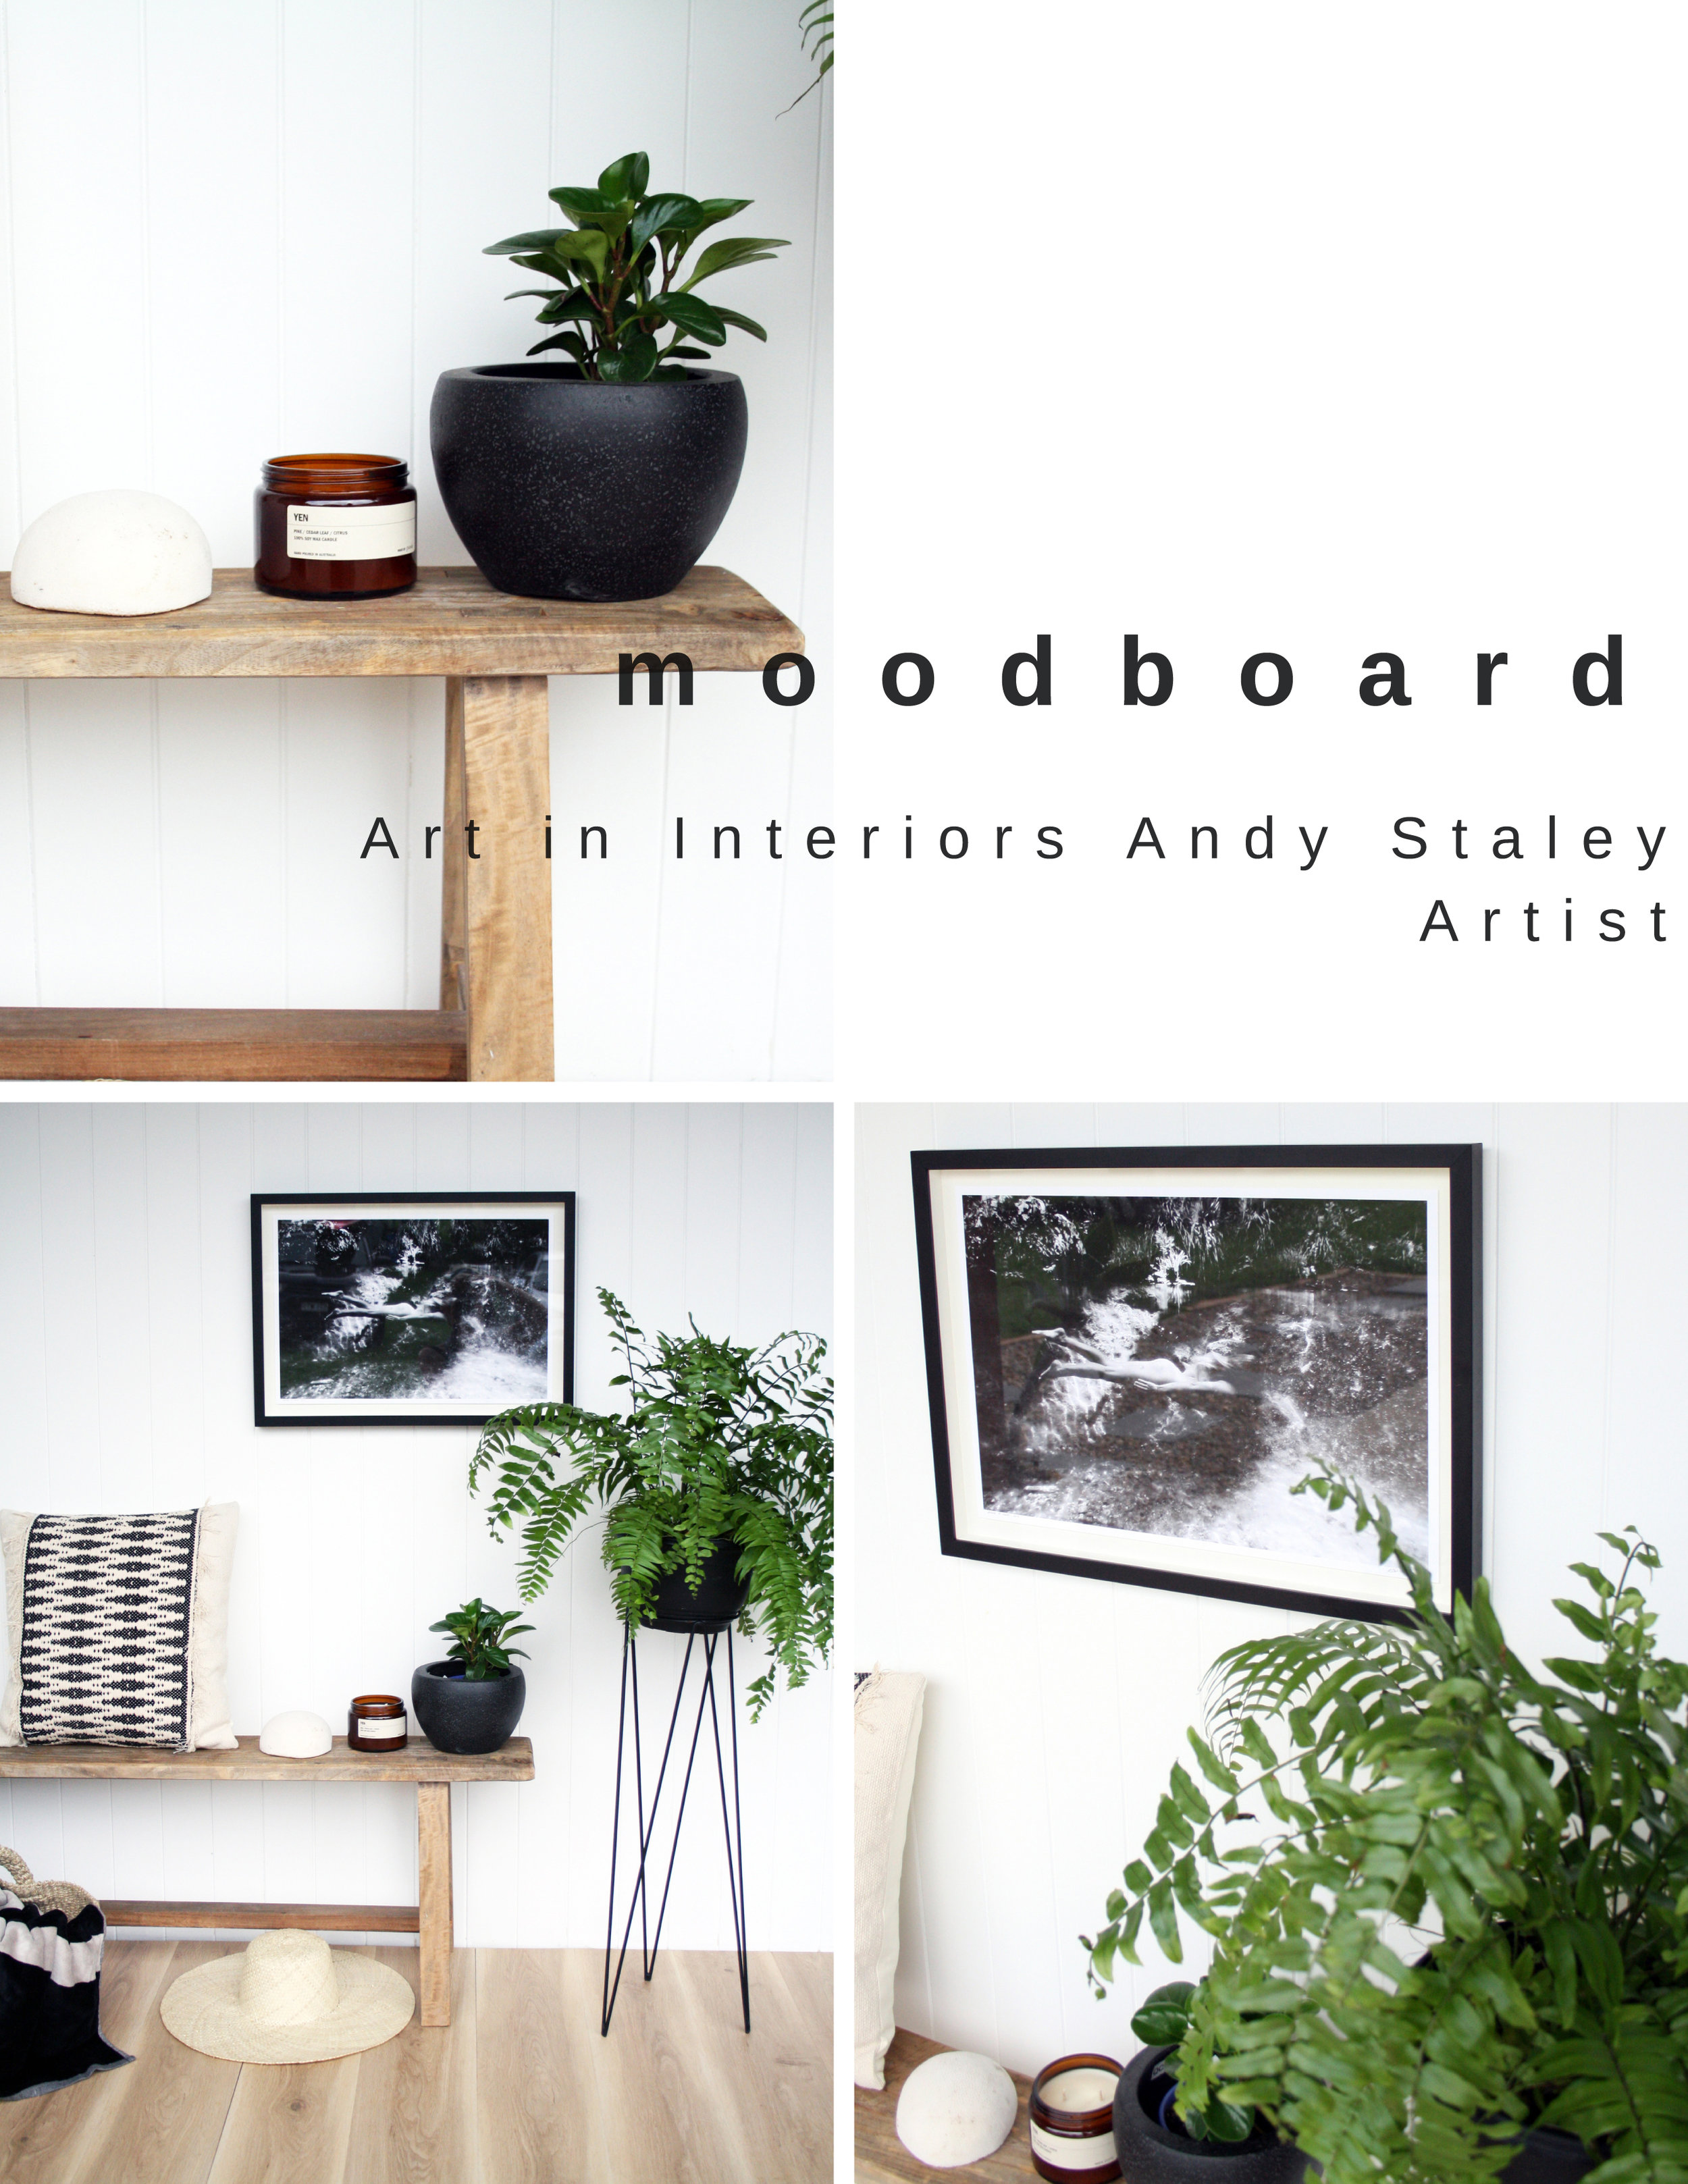 Art In Interiors Moodboard Andy Staley - .jpg